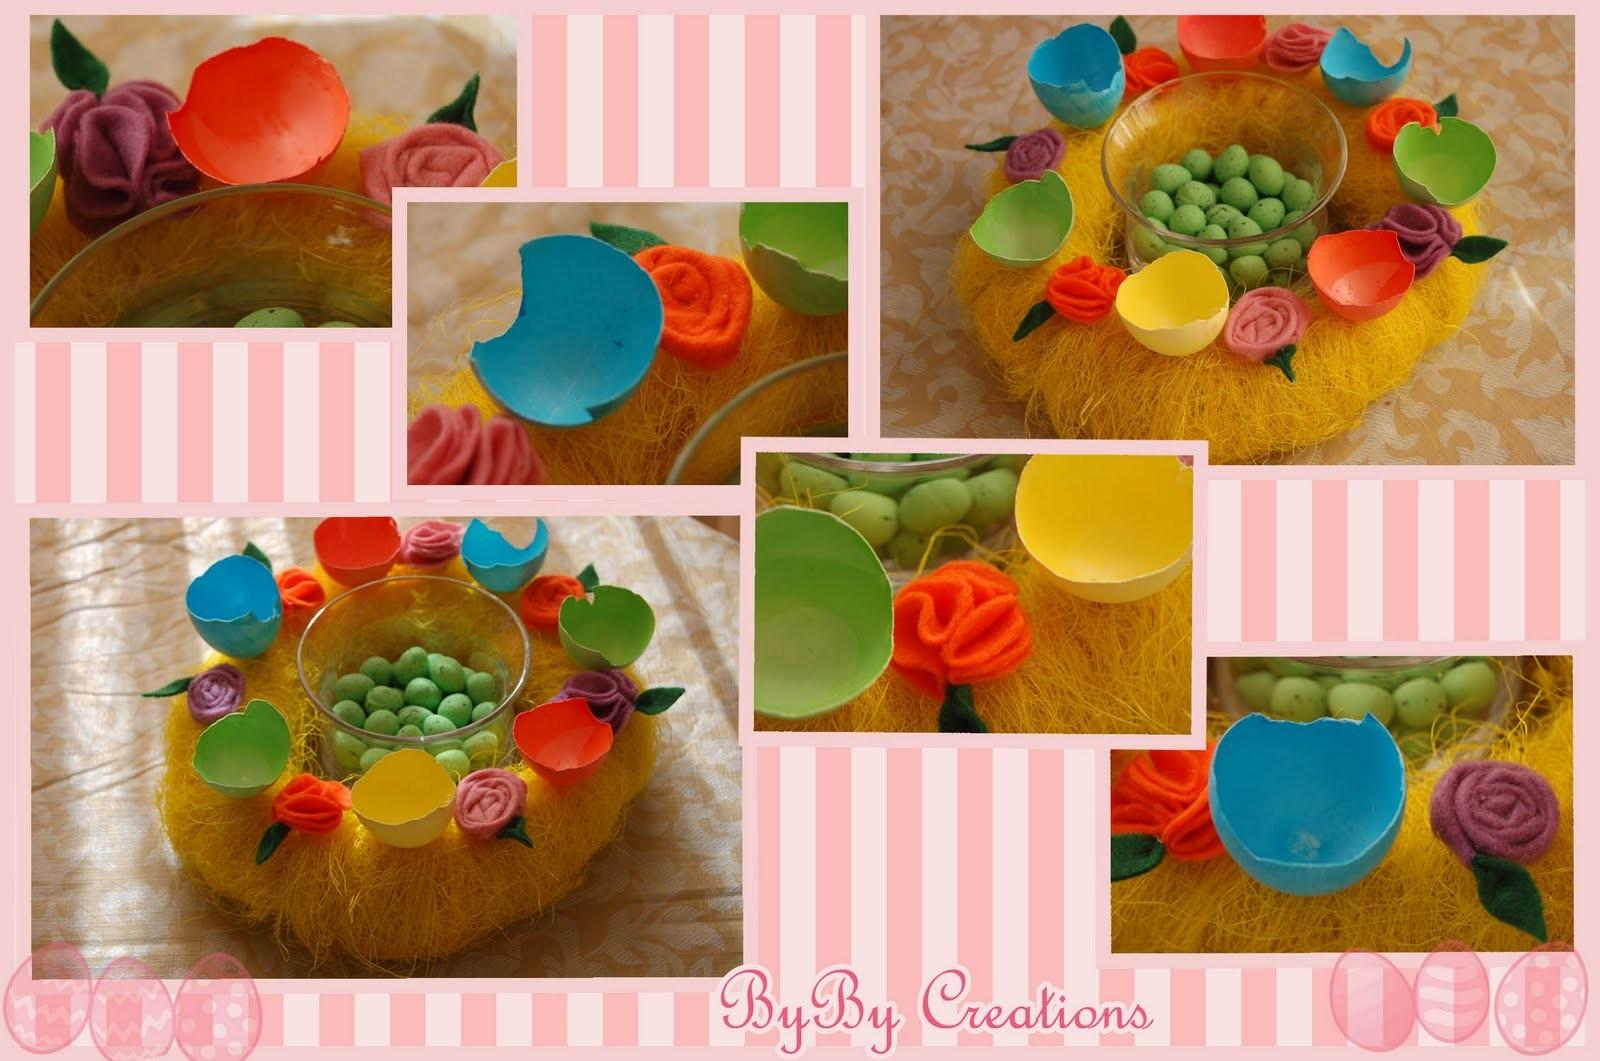 Byby Kingdom Another Colorful Easter Decoration Table